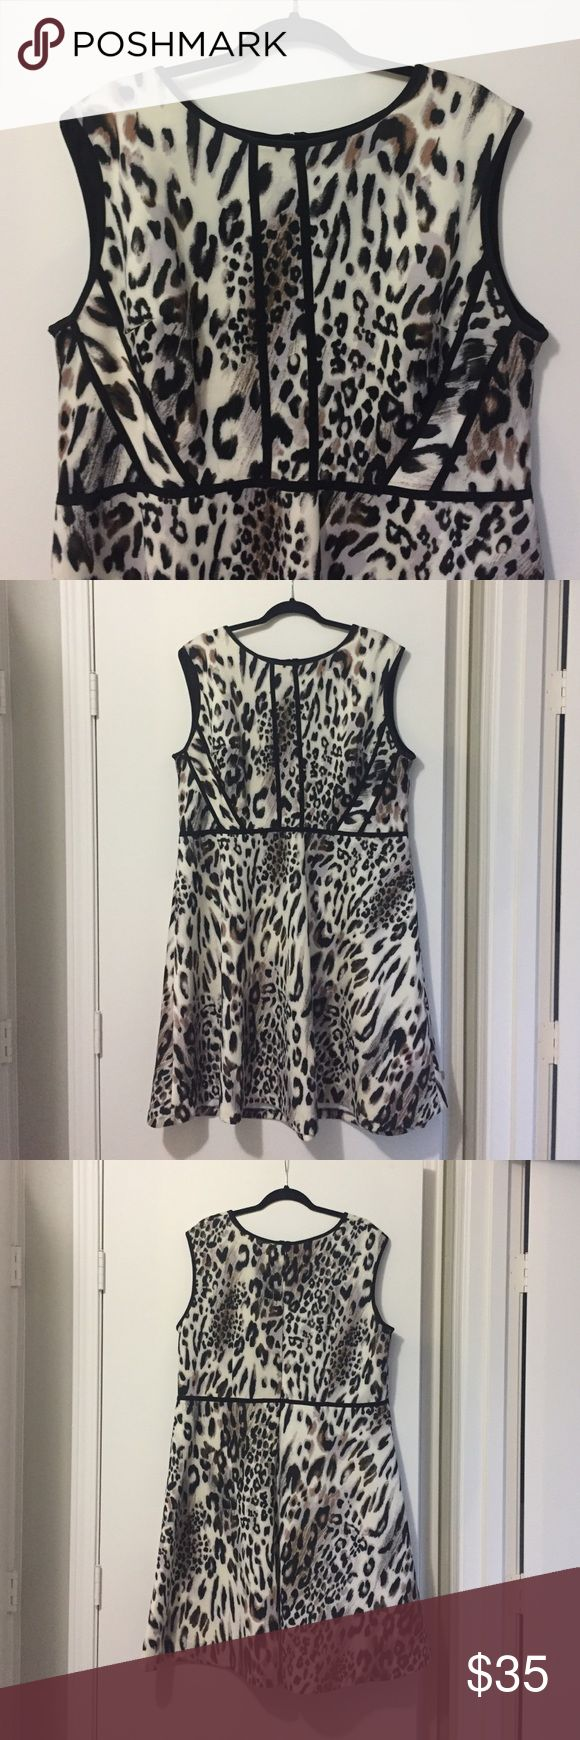 Wild Print Plus Size Dress Super flattering fun animal print dress. Great condition. Has some stretch to it so its comfy. Perfect for work or even going out. studio one Dresses